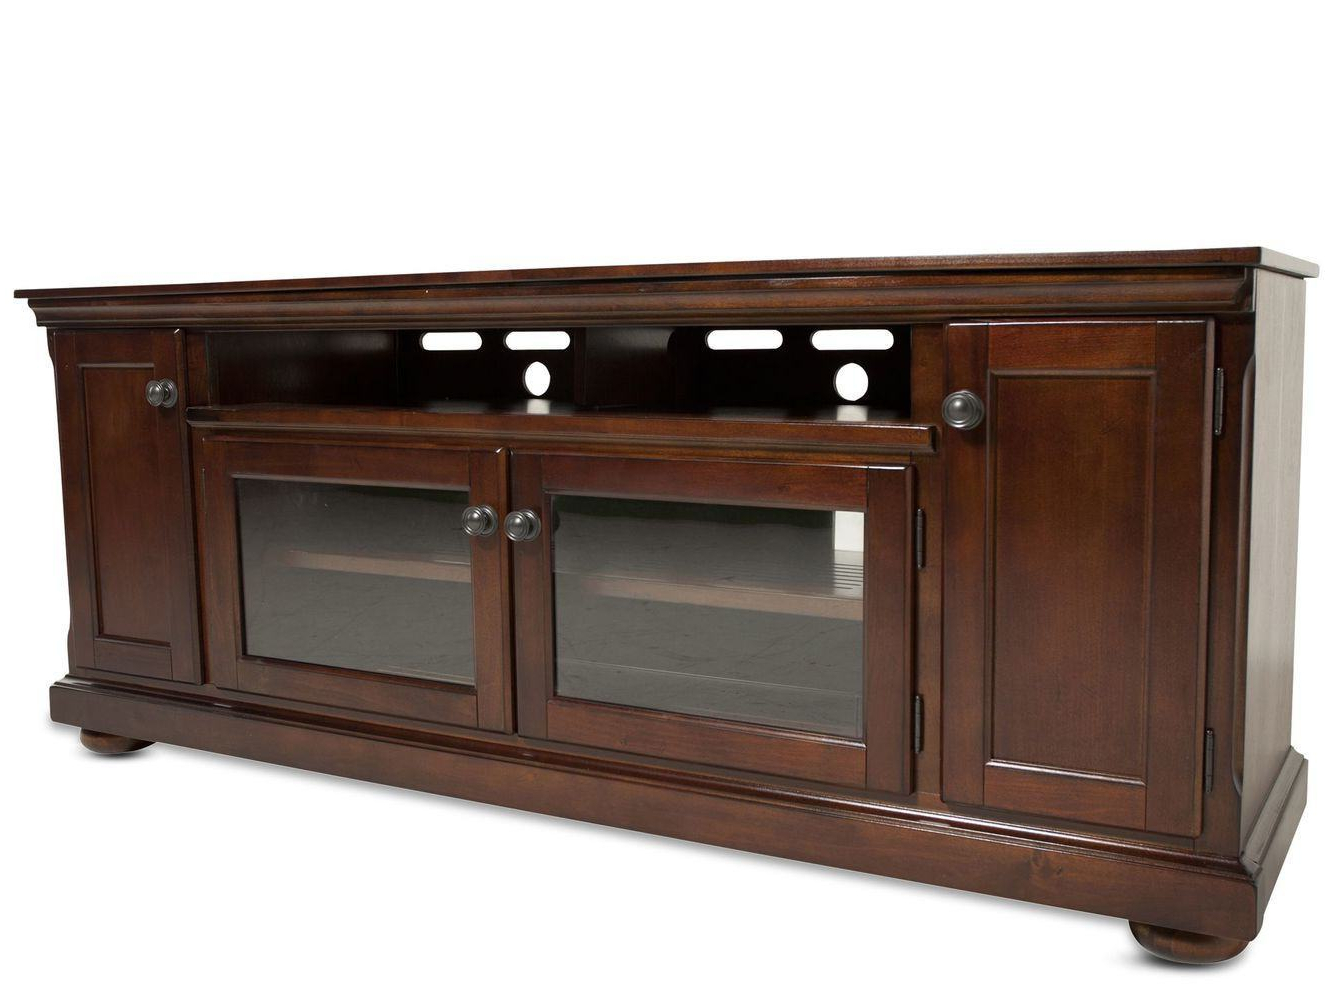 Simple 72 Inch Tv Stand 72 Inch Tv Stand | Cakestandlady Pertaining To Walton 72 Inch Tv Stands (View 9 of 20)